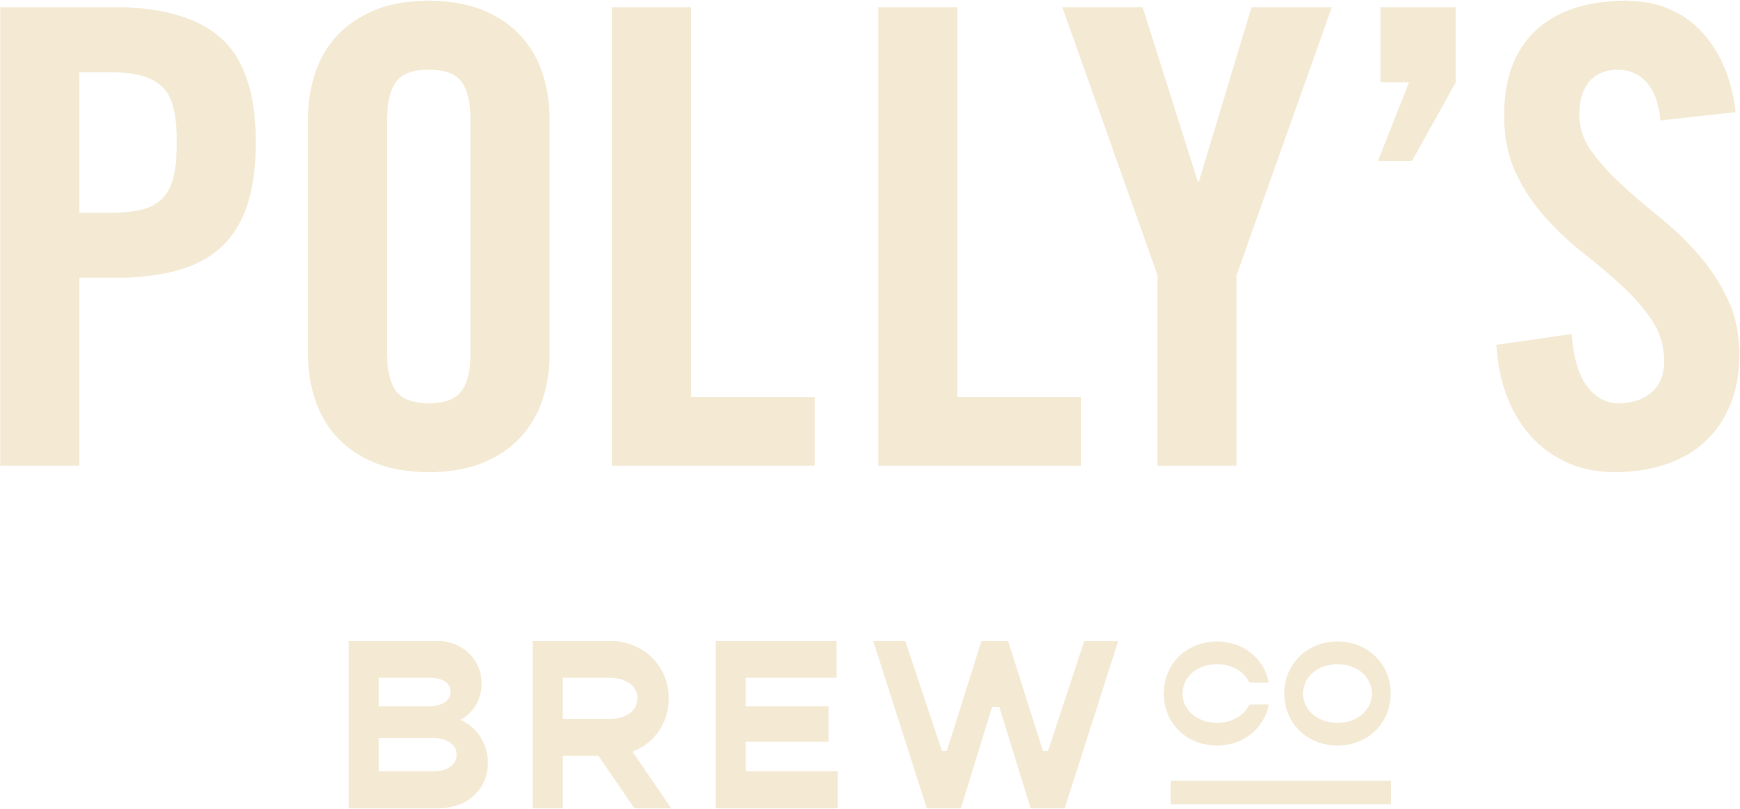 Polly's Brew Co. Online Shop